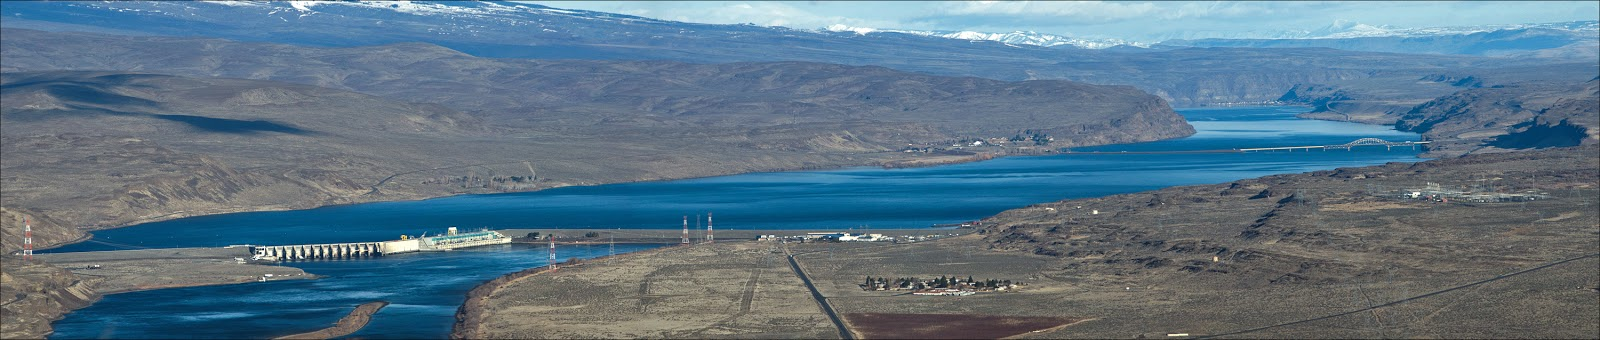 Wanapum Dam (left) and I-90 Bridge (right) at Vantage, WA